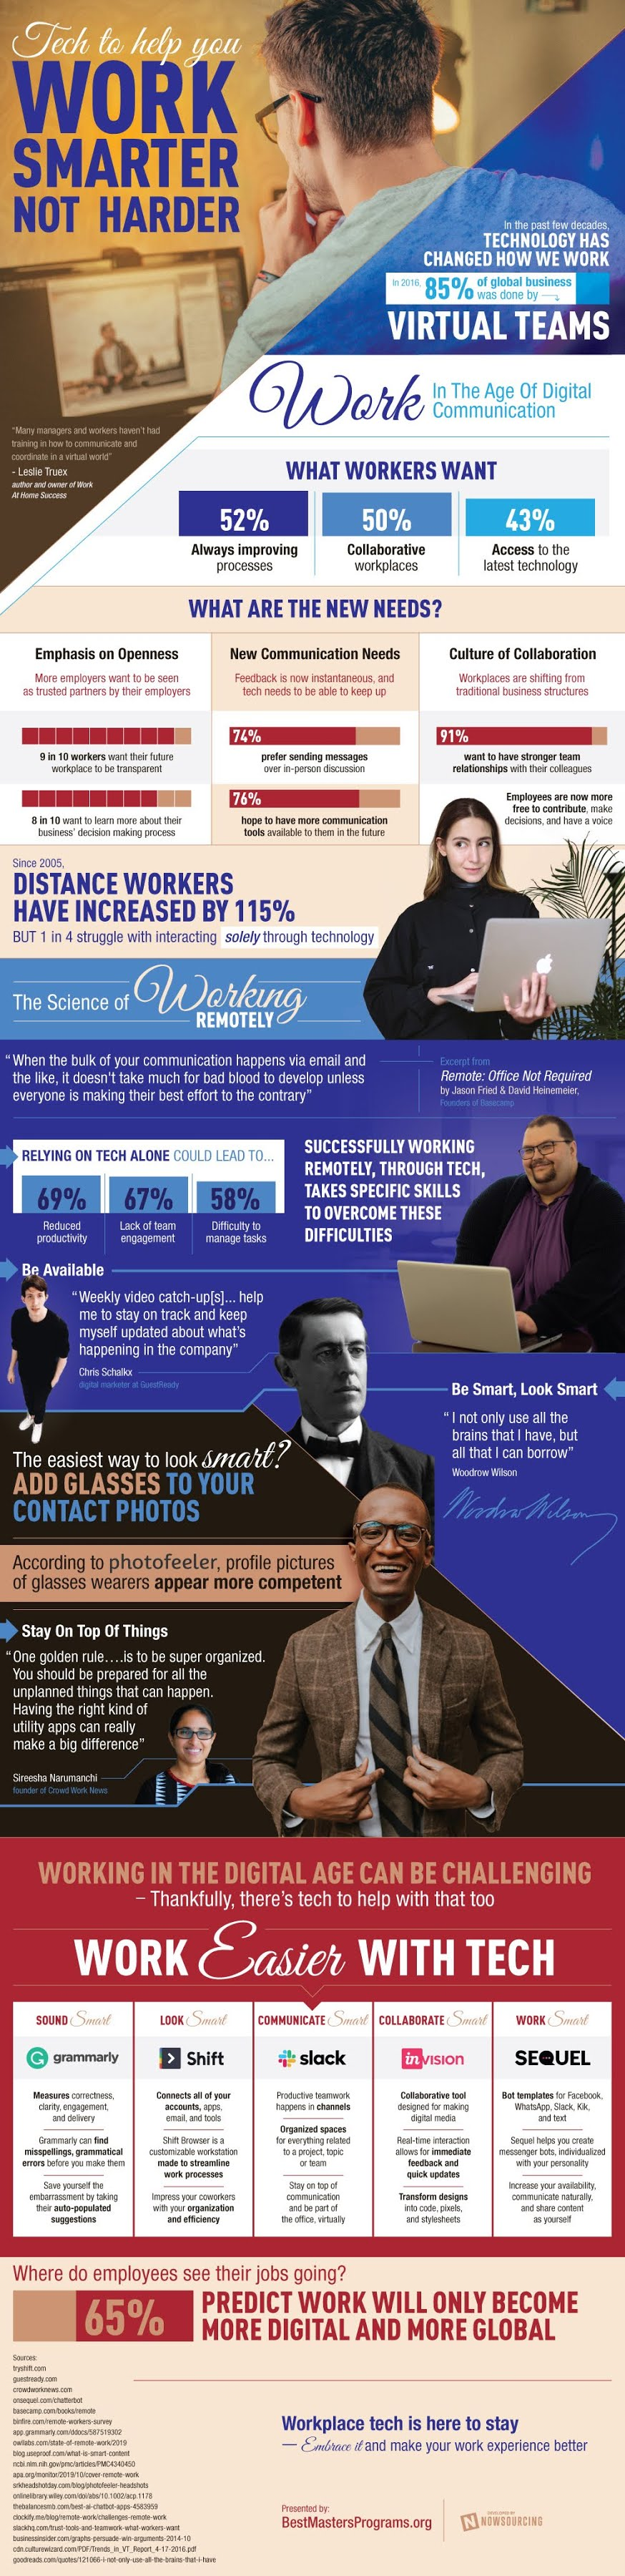 Tech To Help Optimize Your Remote Work #infographic